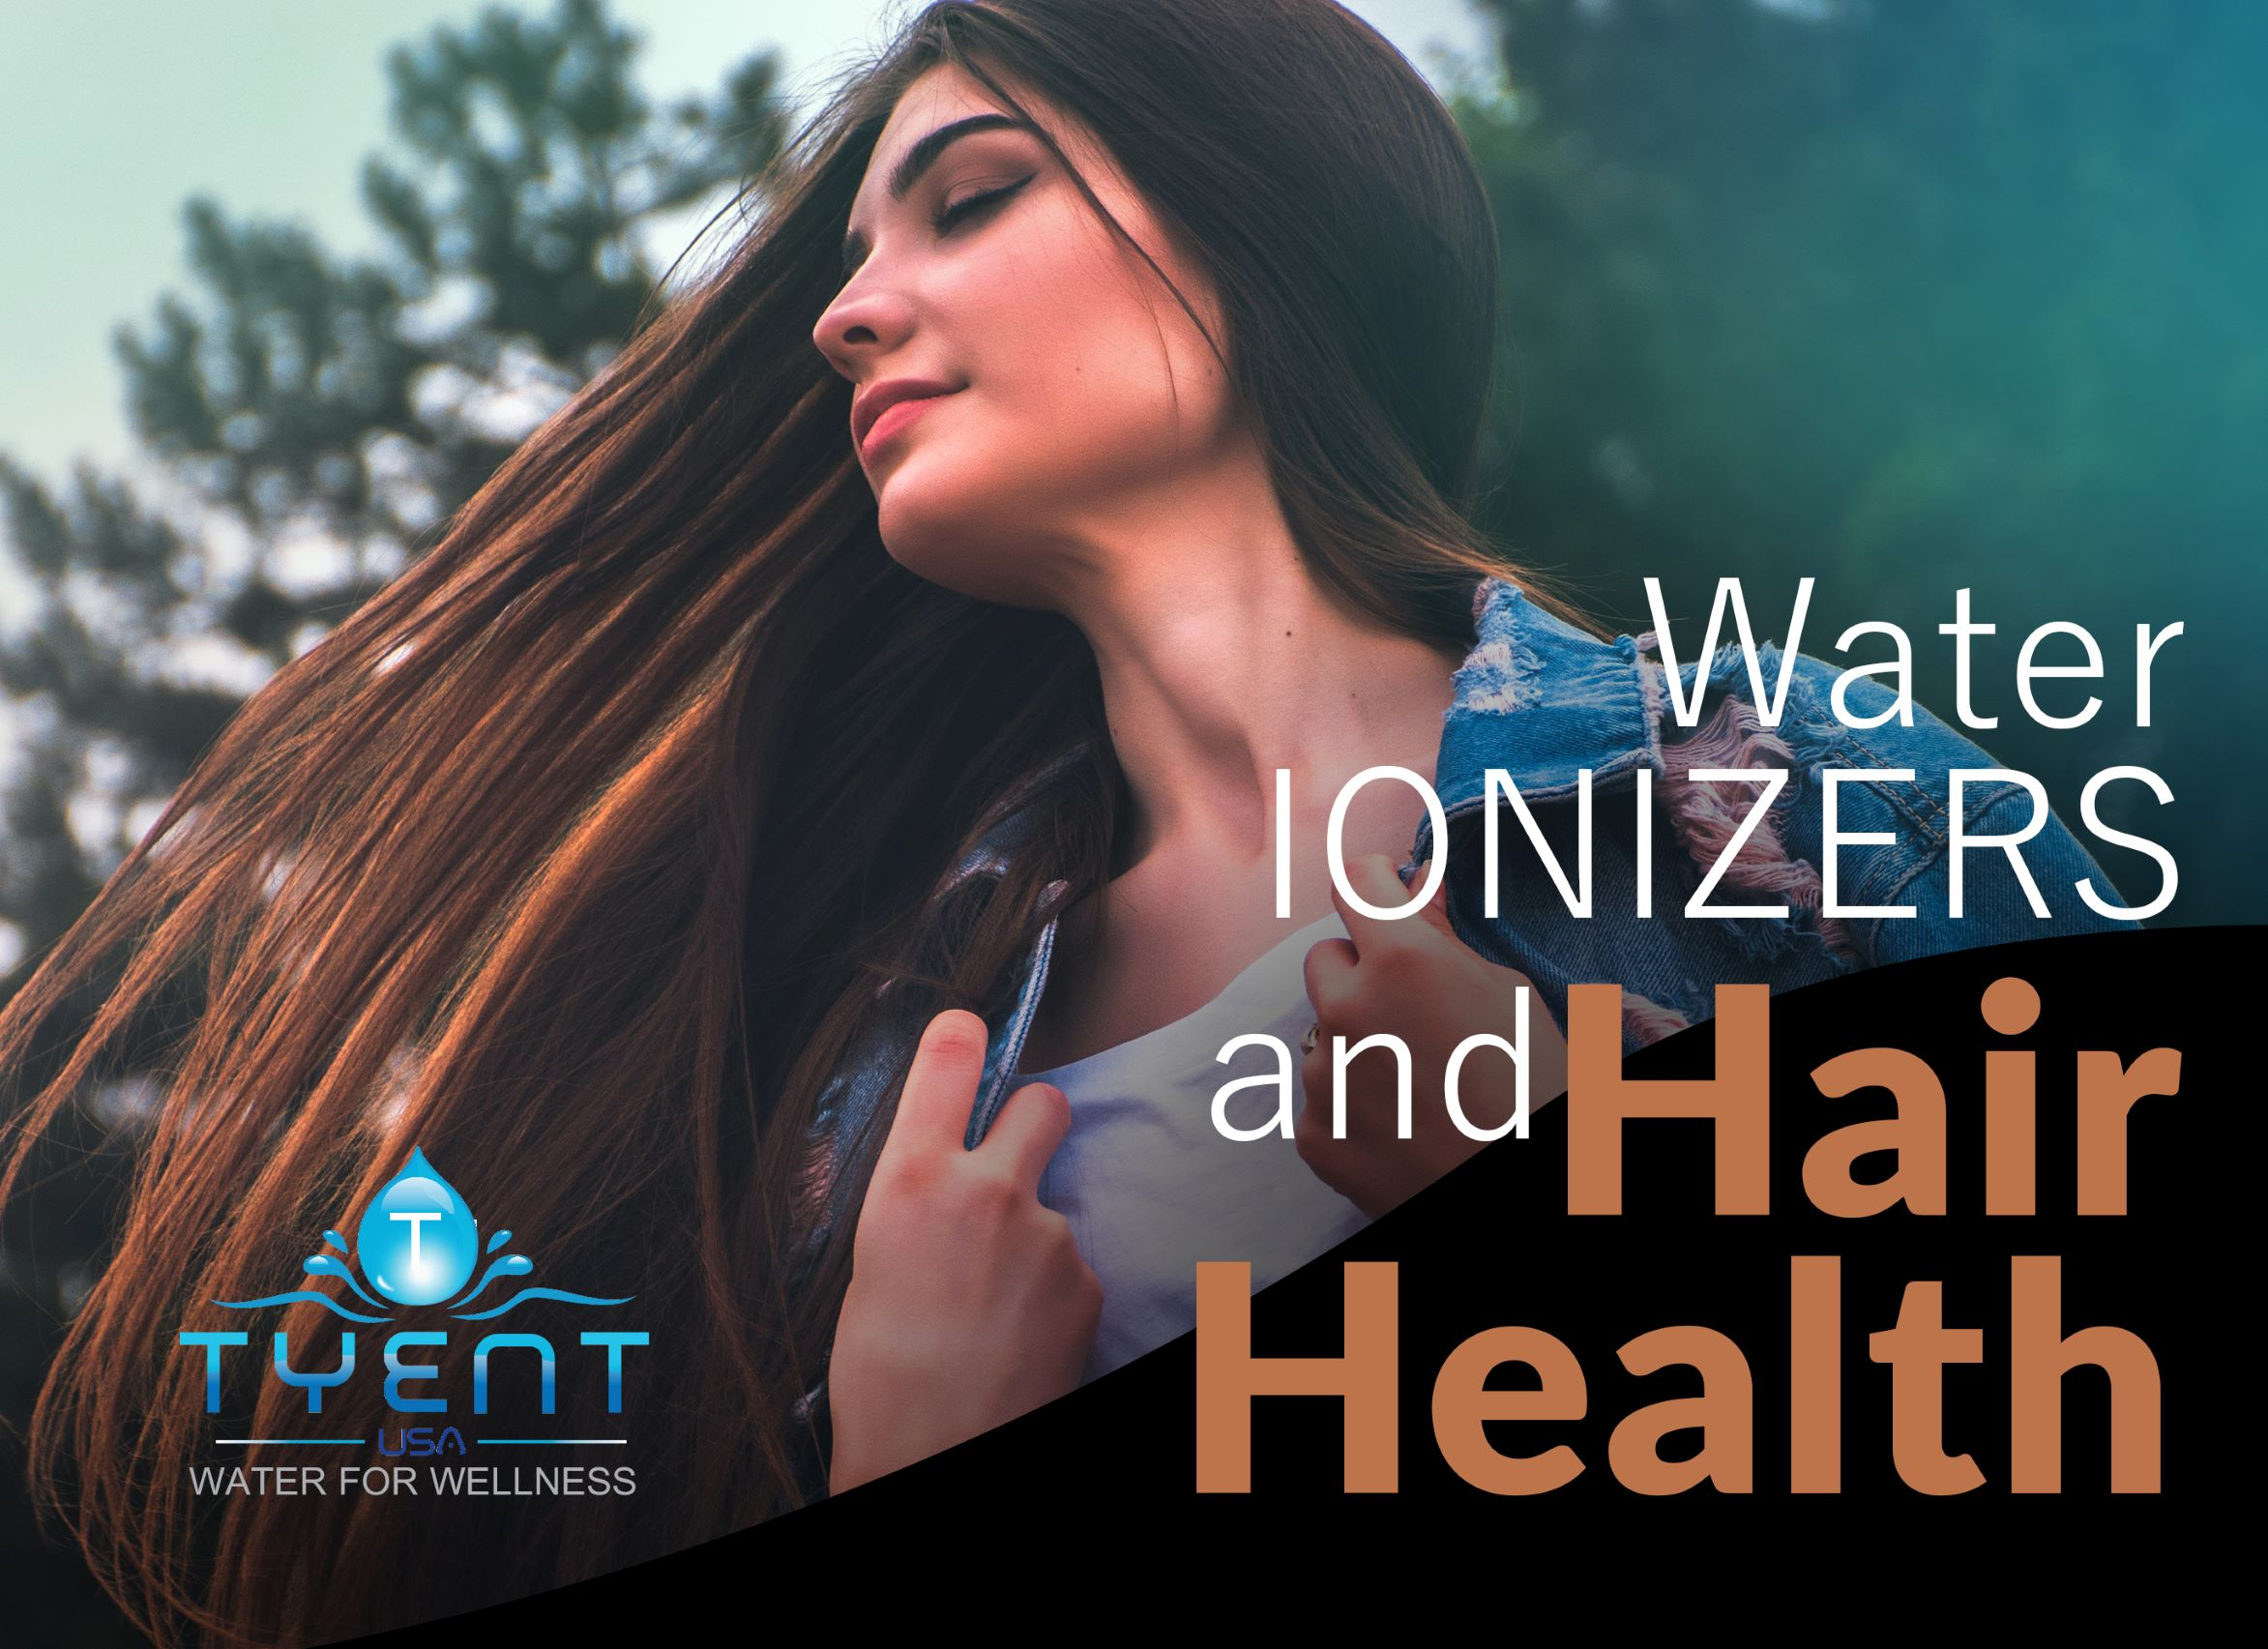 Water Ionizers and Hair Health